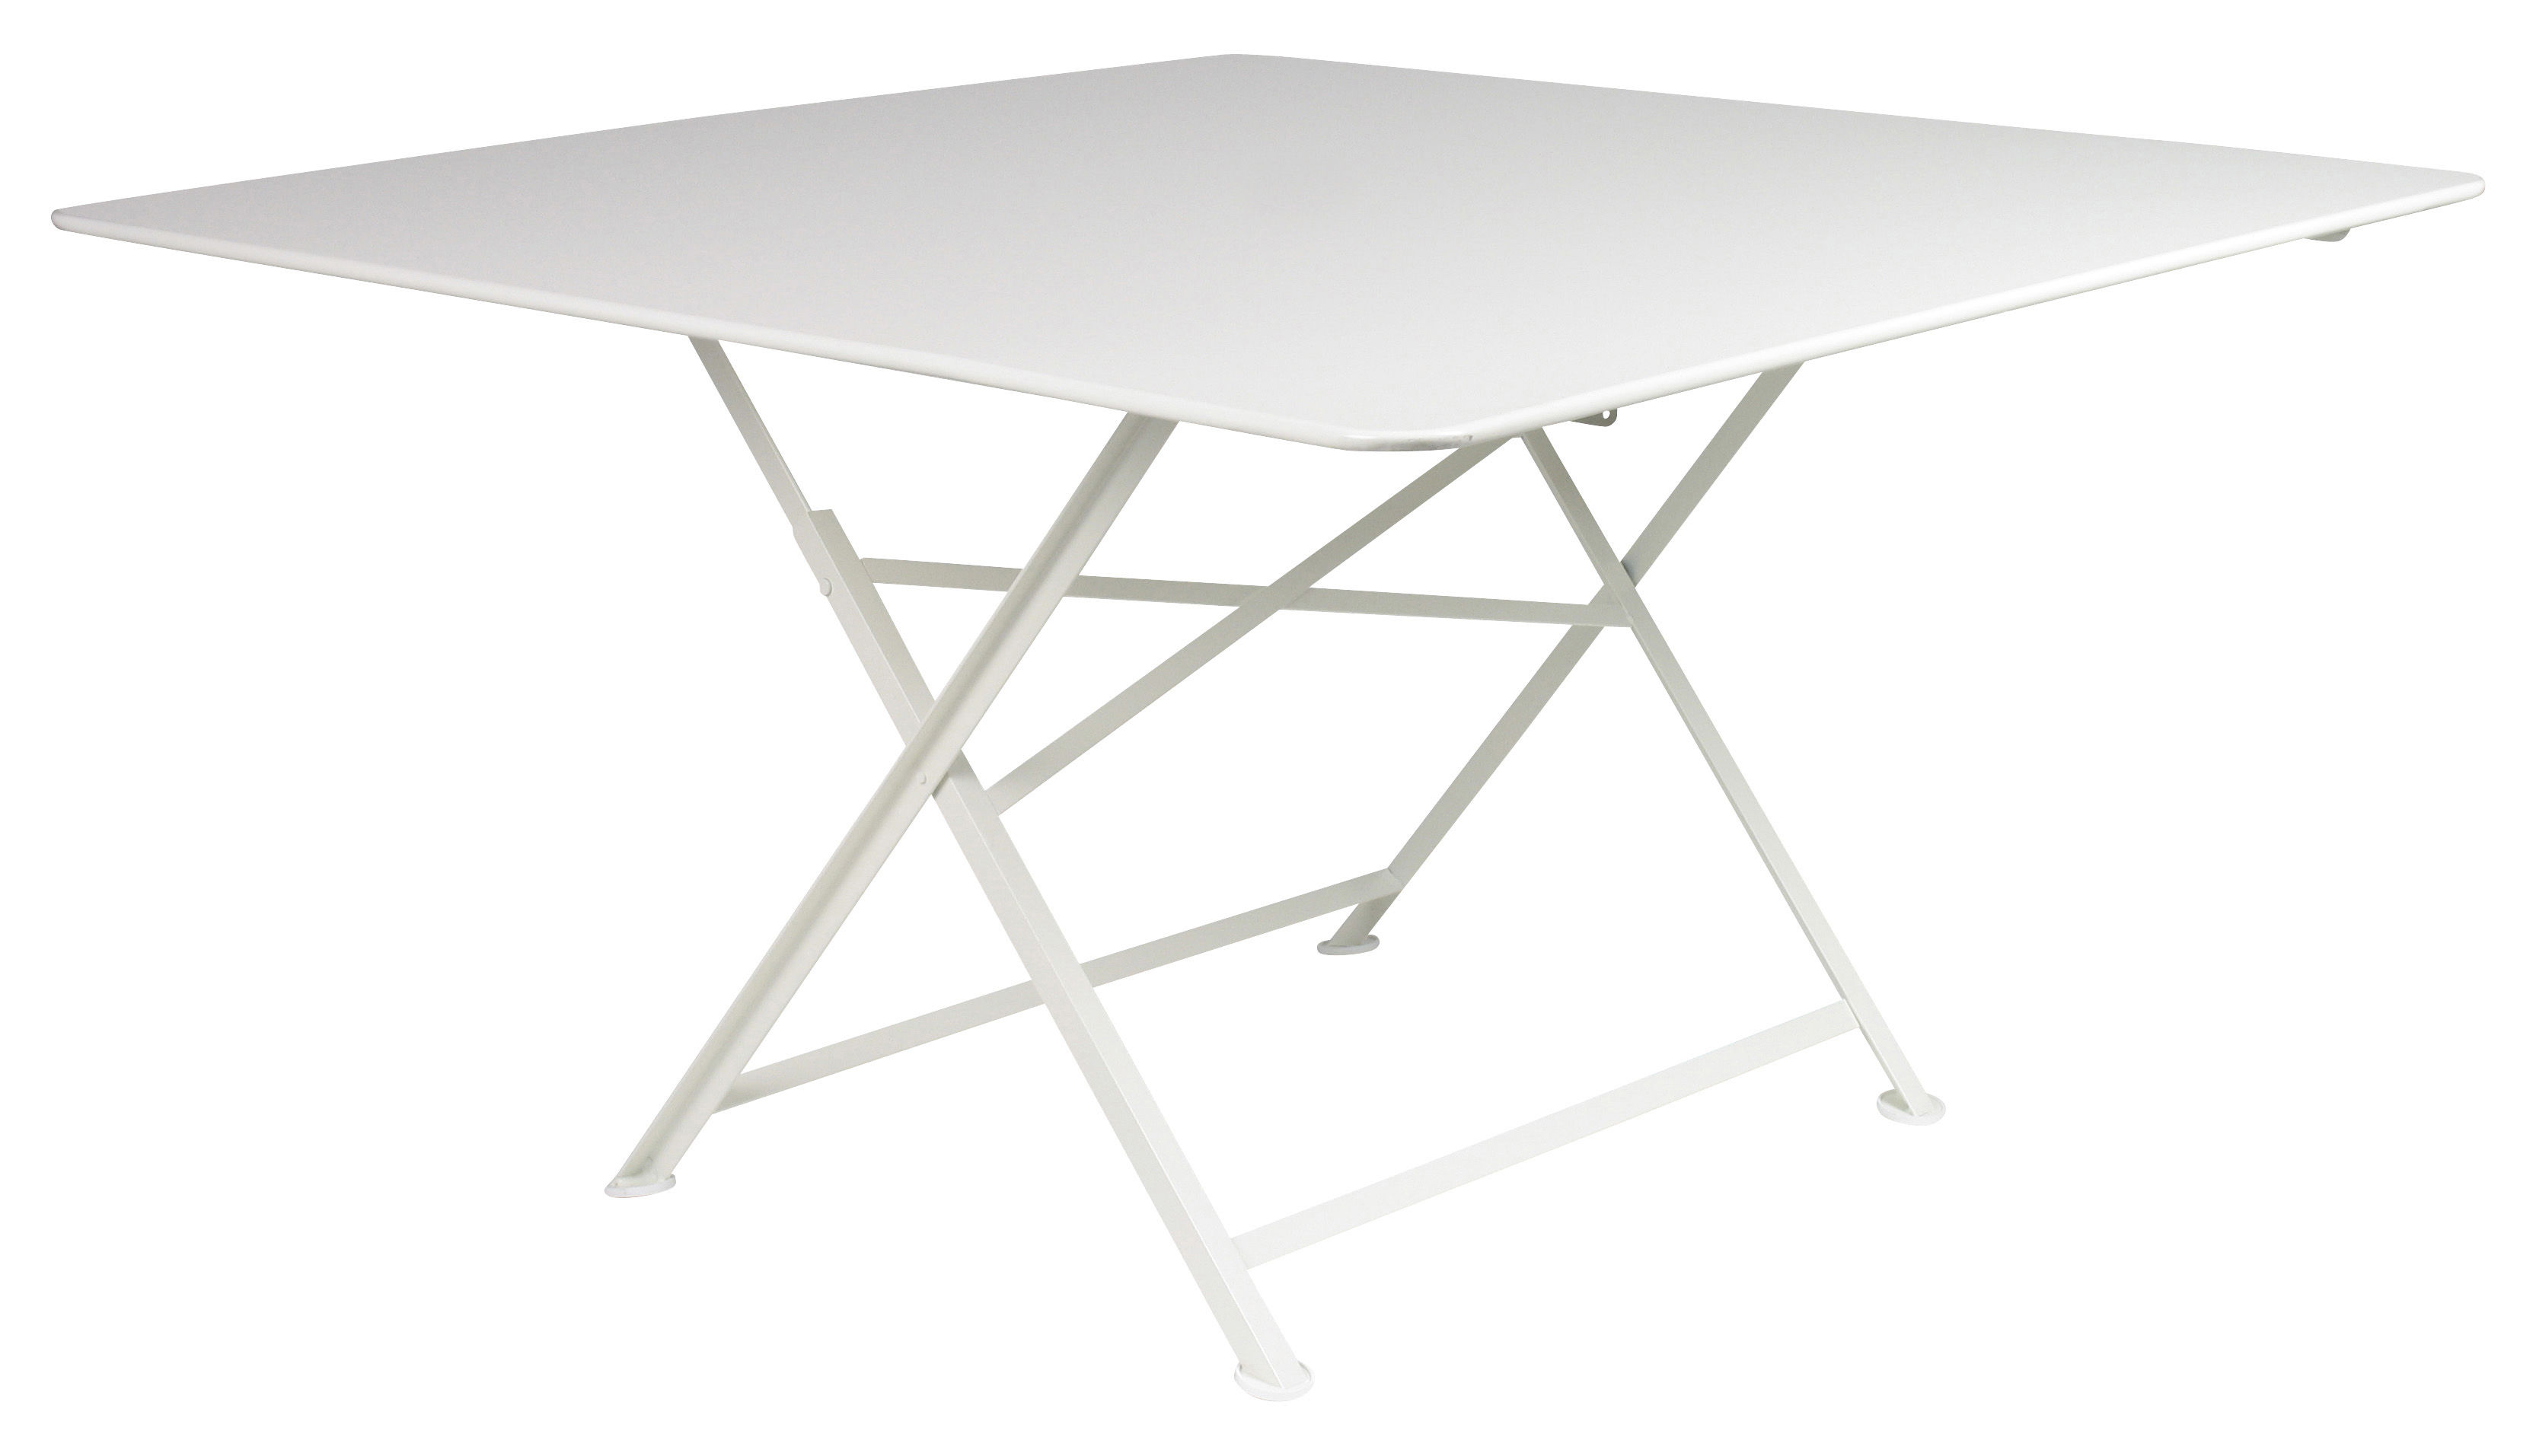 Cargo foldable table 128 x 128 cm white by fermob - Table fermob cargo ...